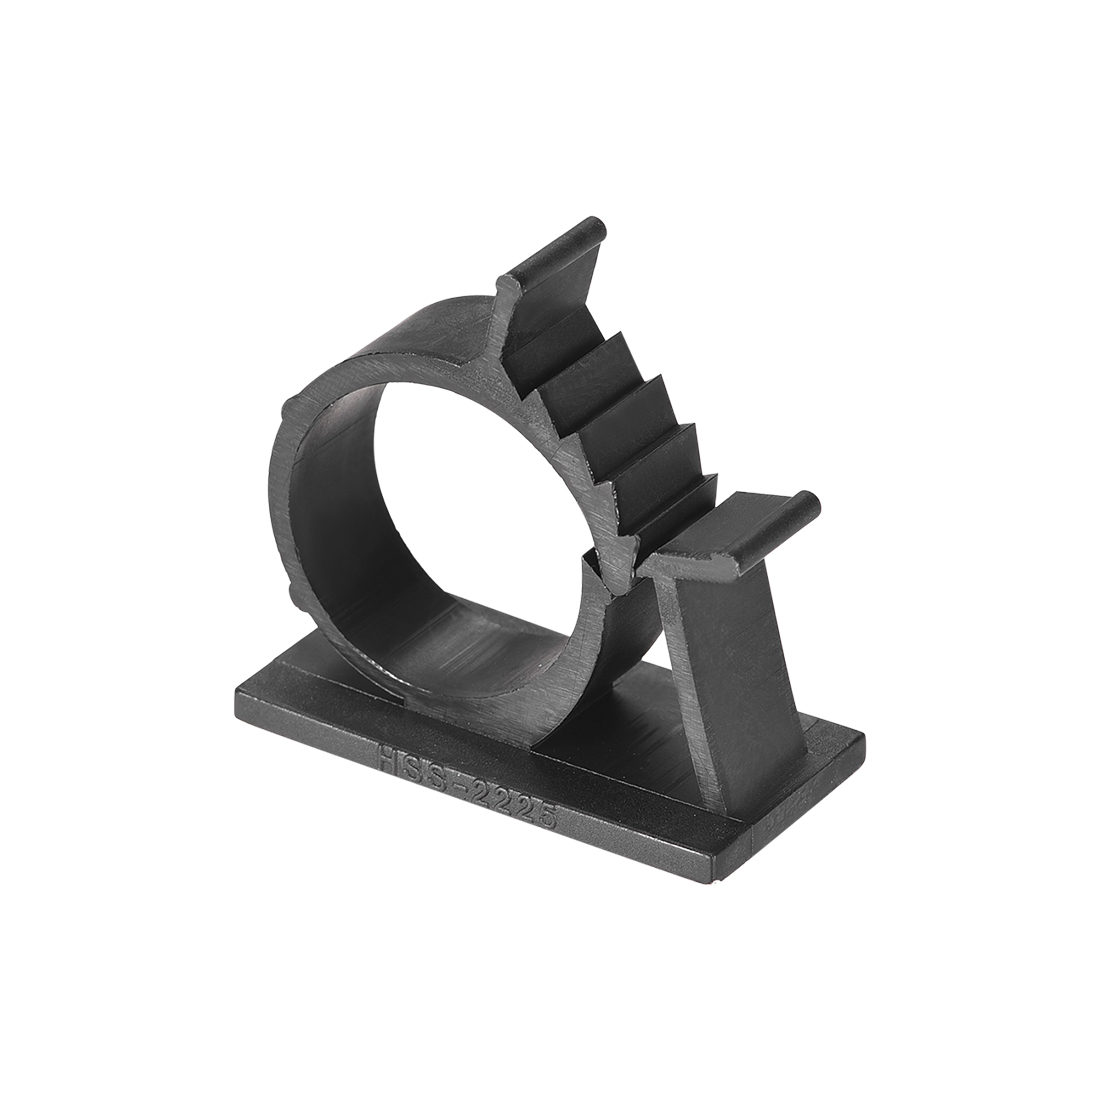 Adjustable Black Cable Clips Buckle Adhesive Base for 20mm-24mm Cords 50Pcs